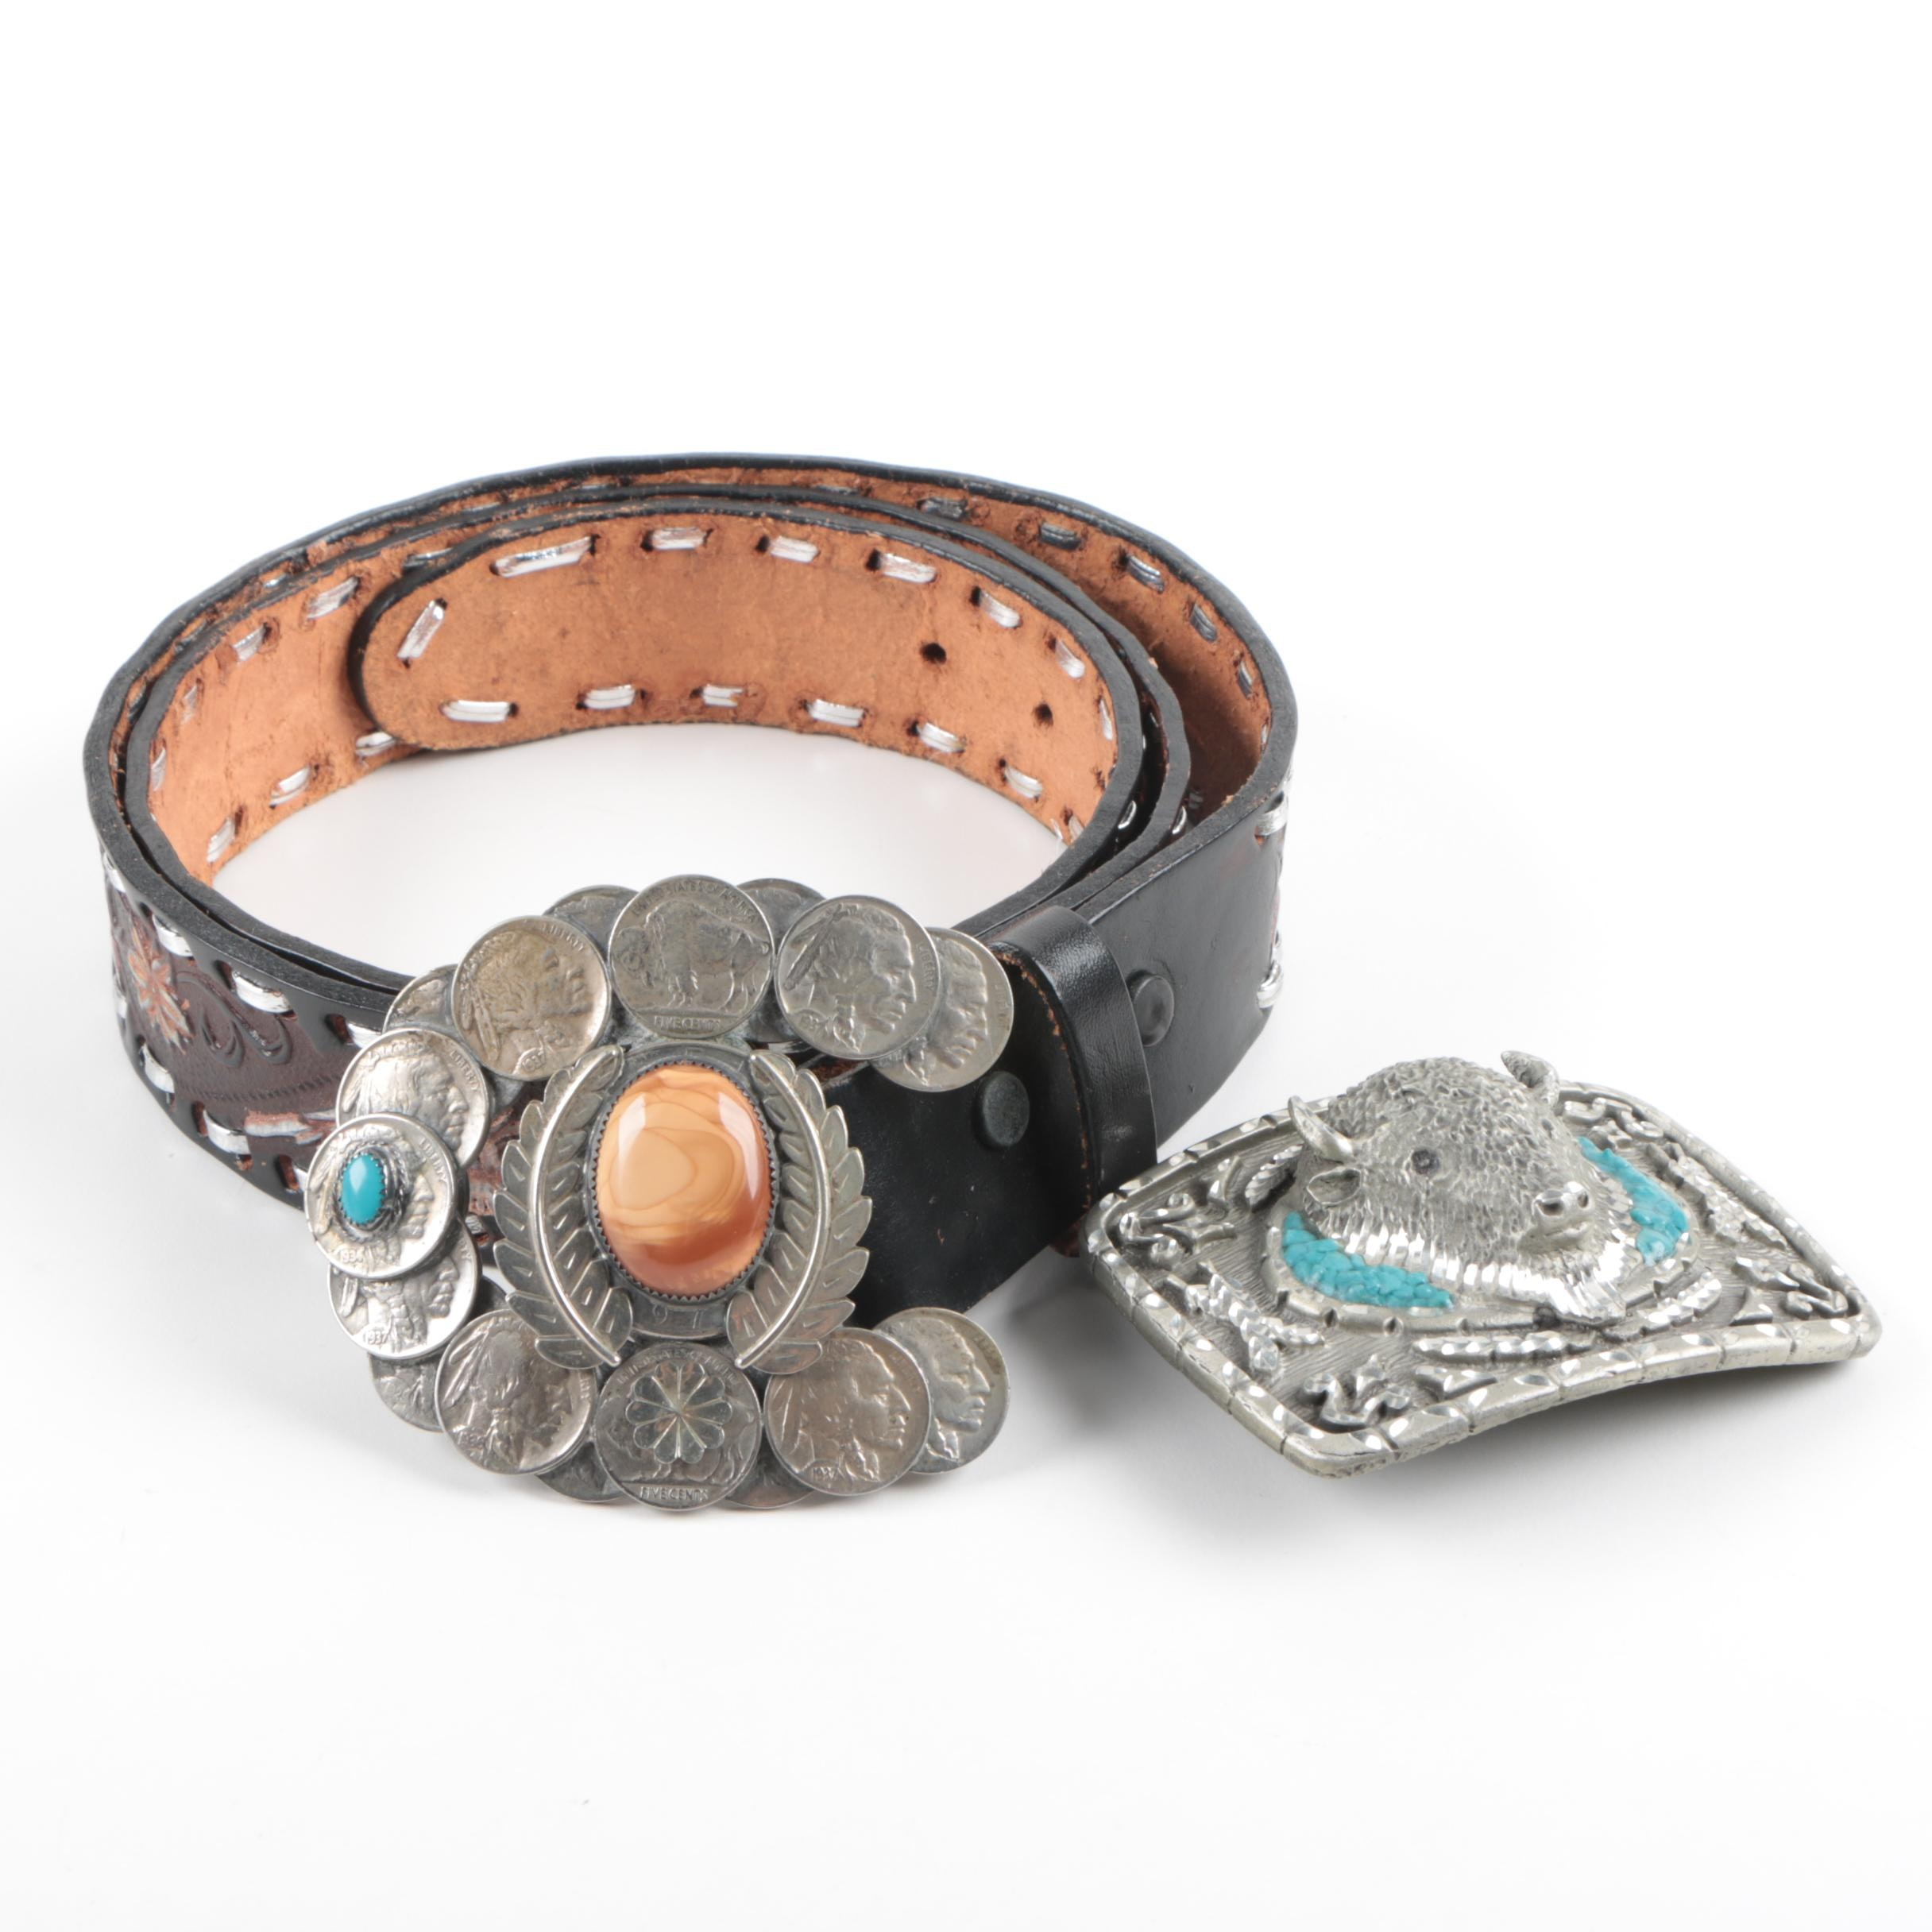 1930s Buffalo Nickel and Dyed Agate Belt Buckle and Leather Belt